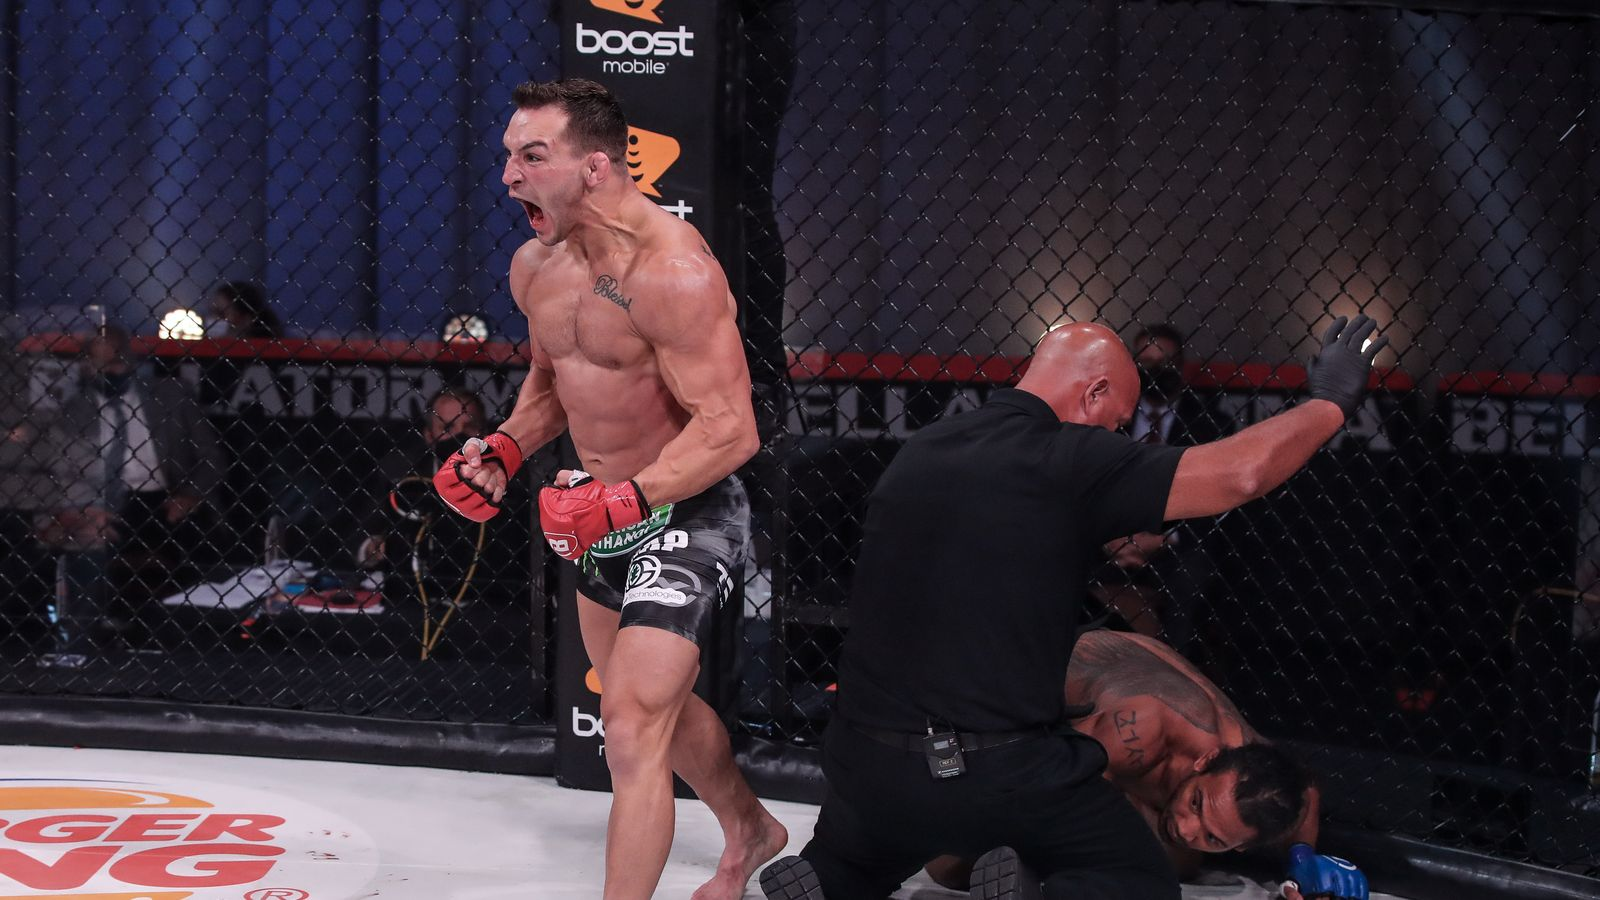 Bellator 243: Michael Chandler knocks out Benson Henderson in first round |  MMA News | Sky Sports